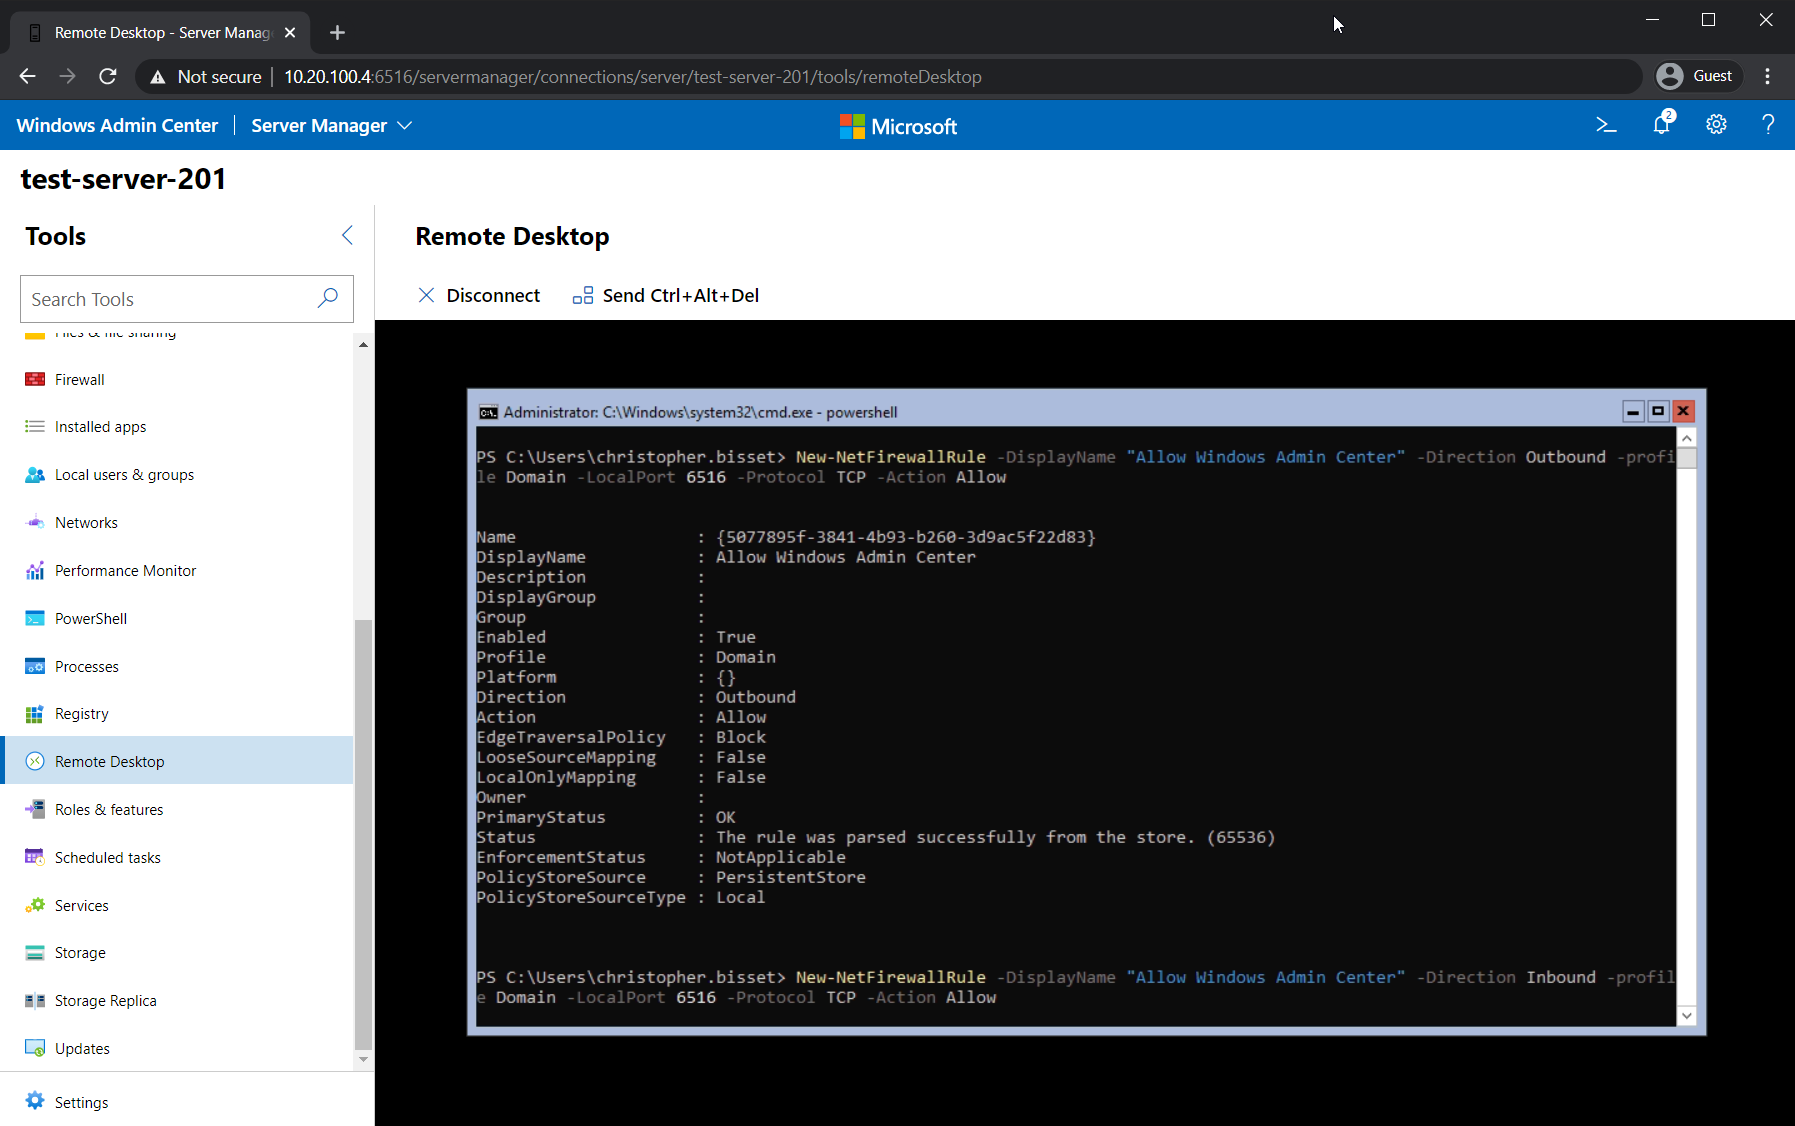 Viewing the remote desktop of Server Core 2019 (it is not very interesting as Server Core 2019 has no GUI)